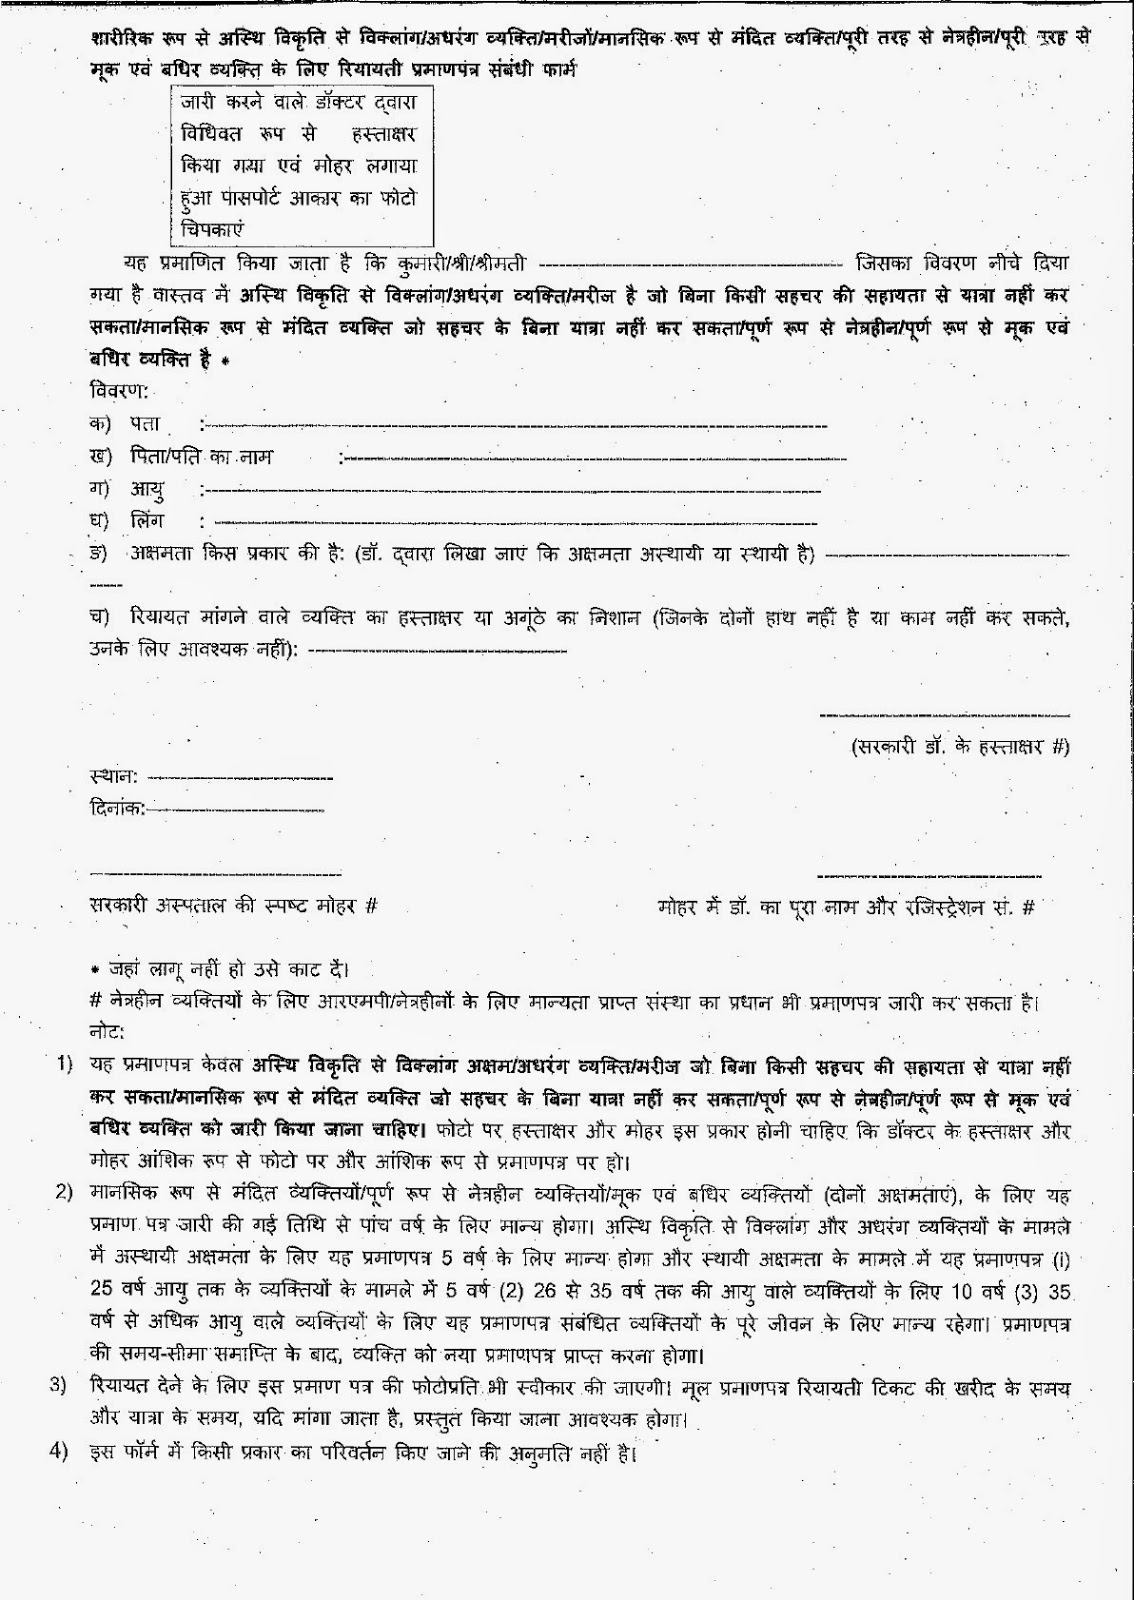 Railway Reservation Form Pdf